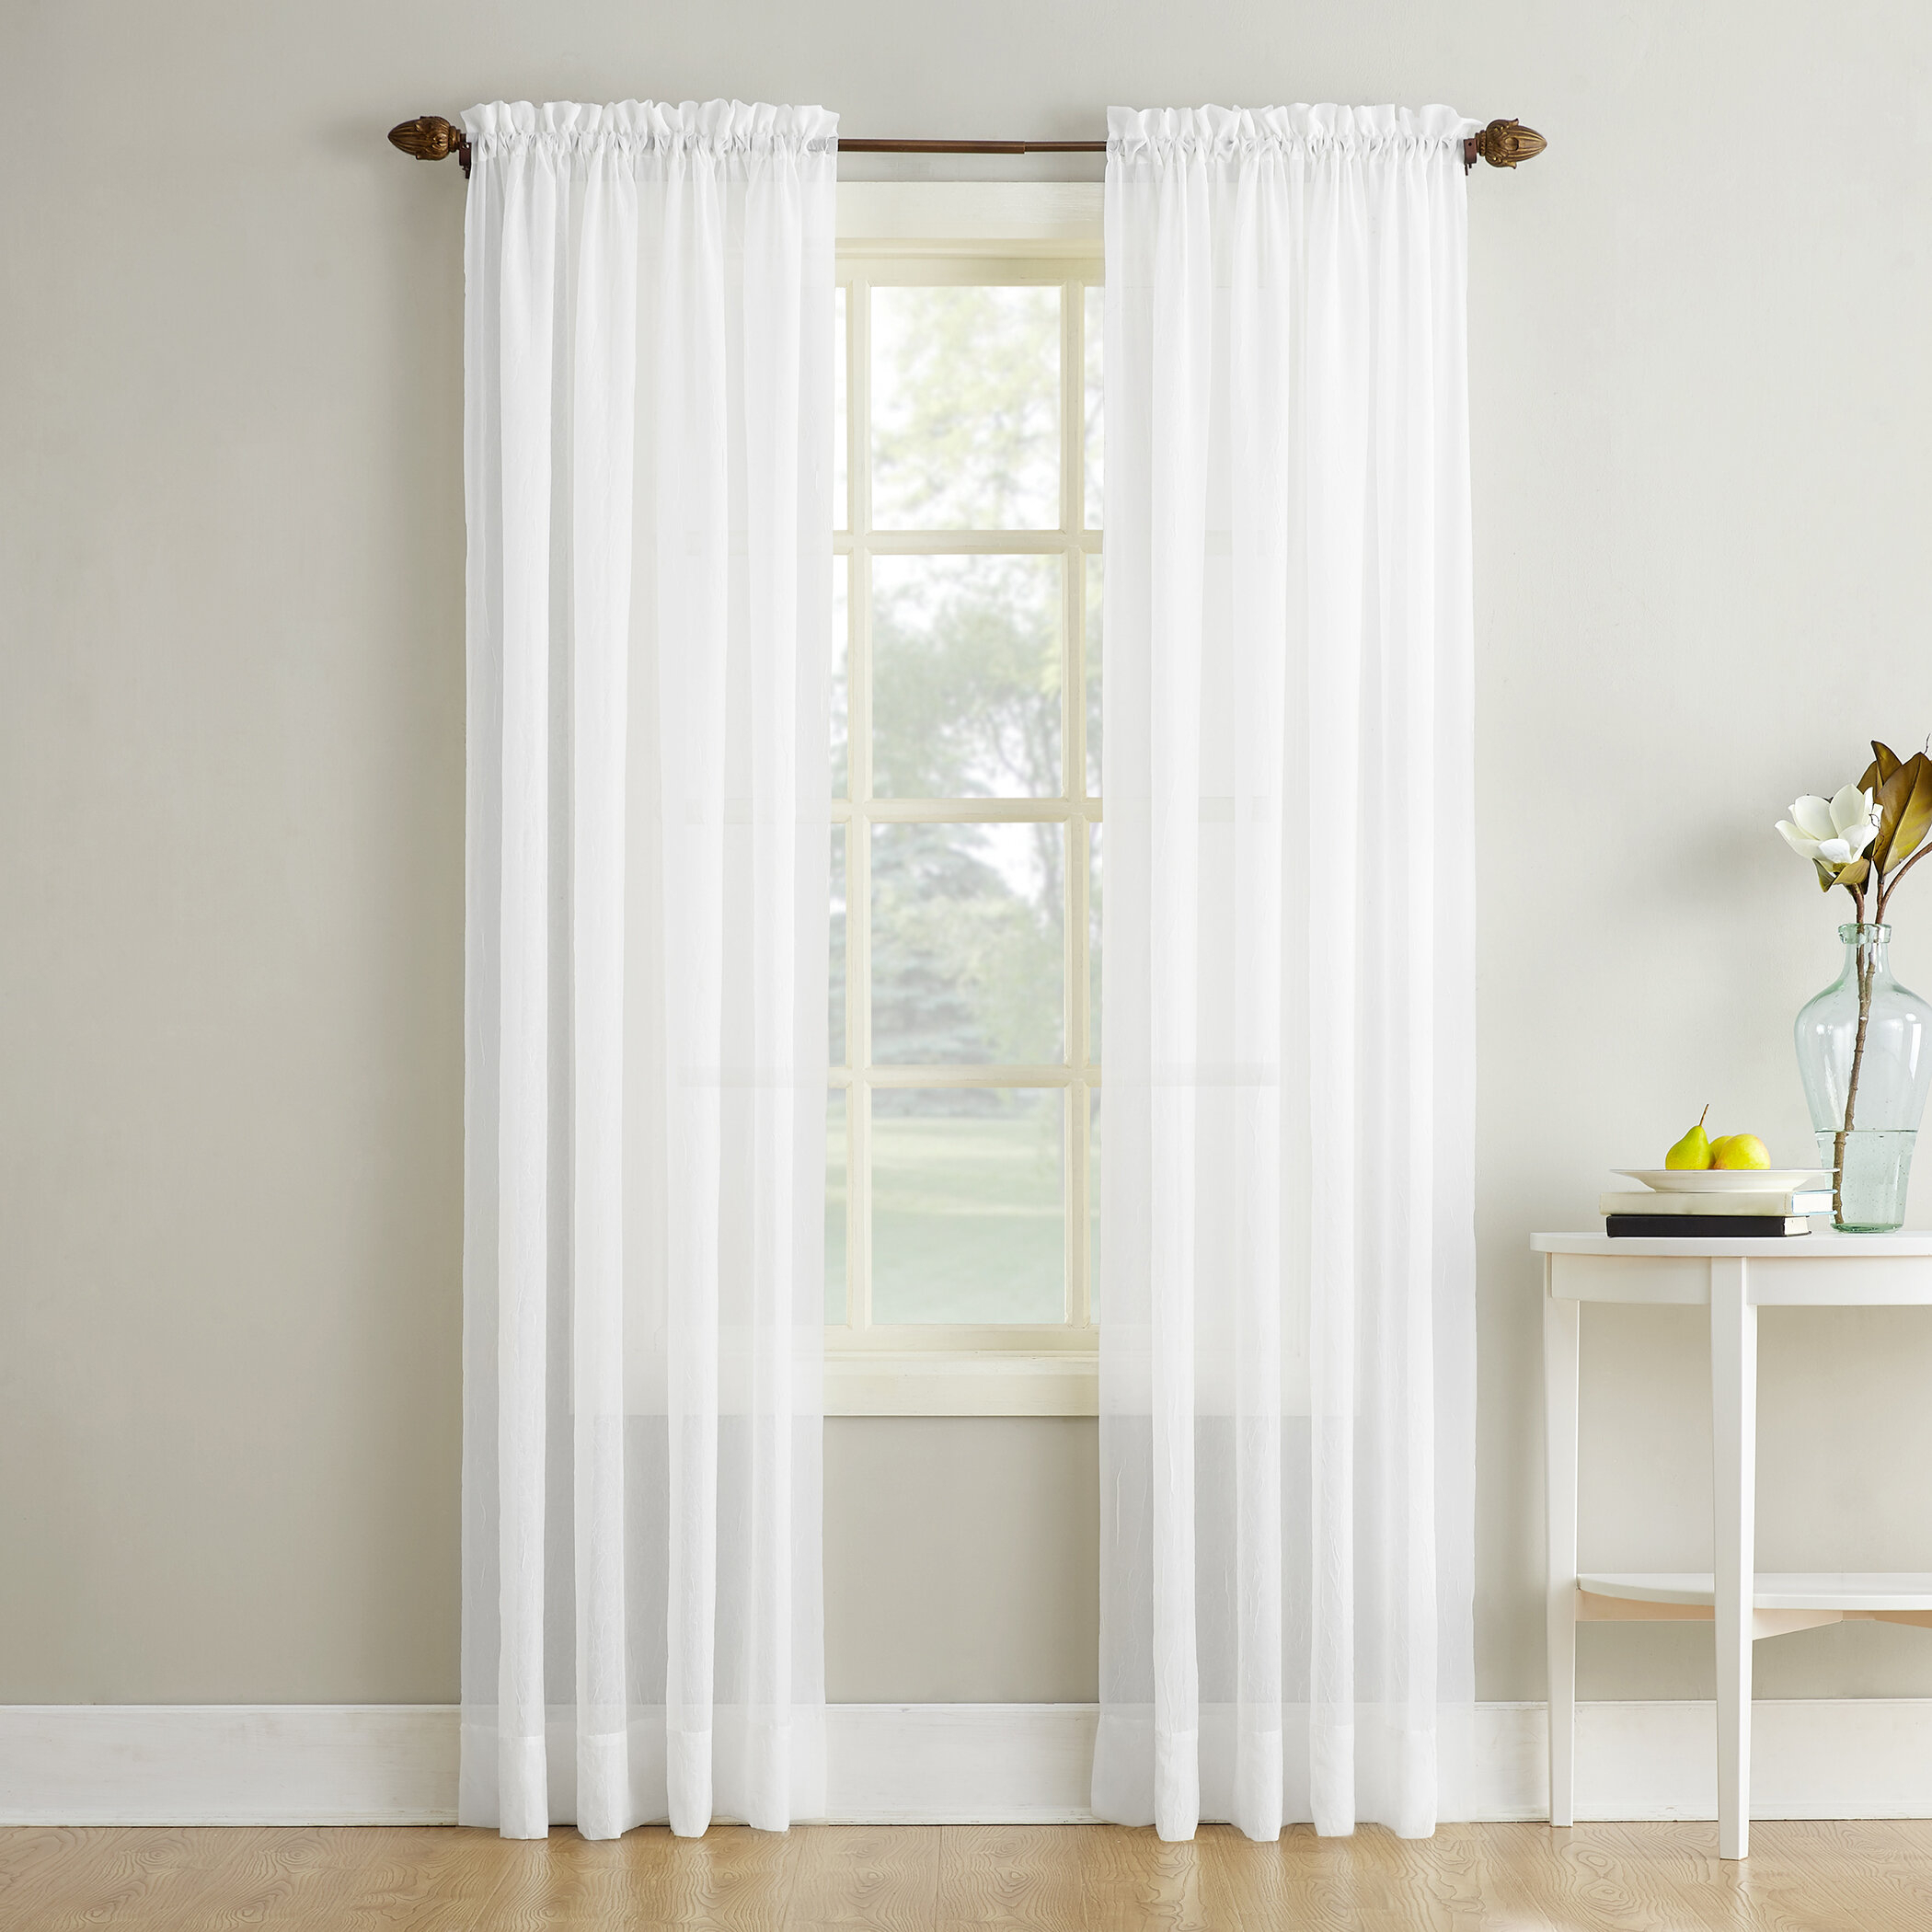 Maxon Crushed Voile Solid Sheer Rod Pocket Single Curtain Panel With Regard To Emily Sheer Voile Solid Single Patio Door Curtain Panels (View 9 of 20)